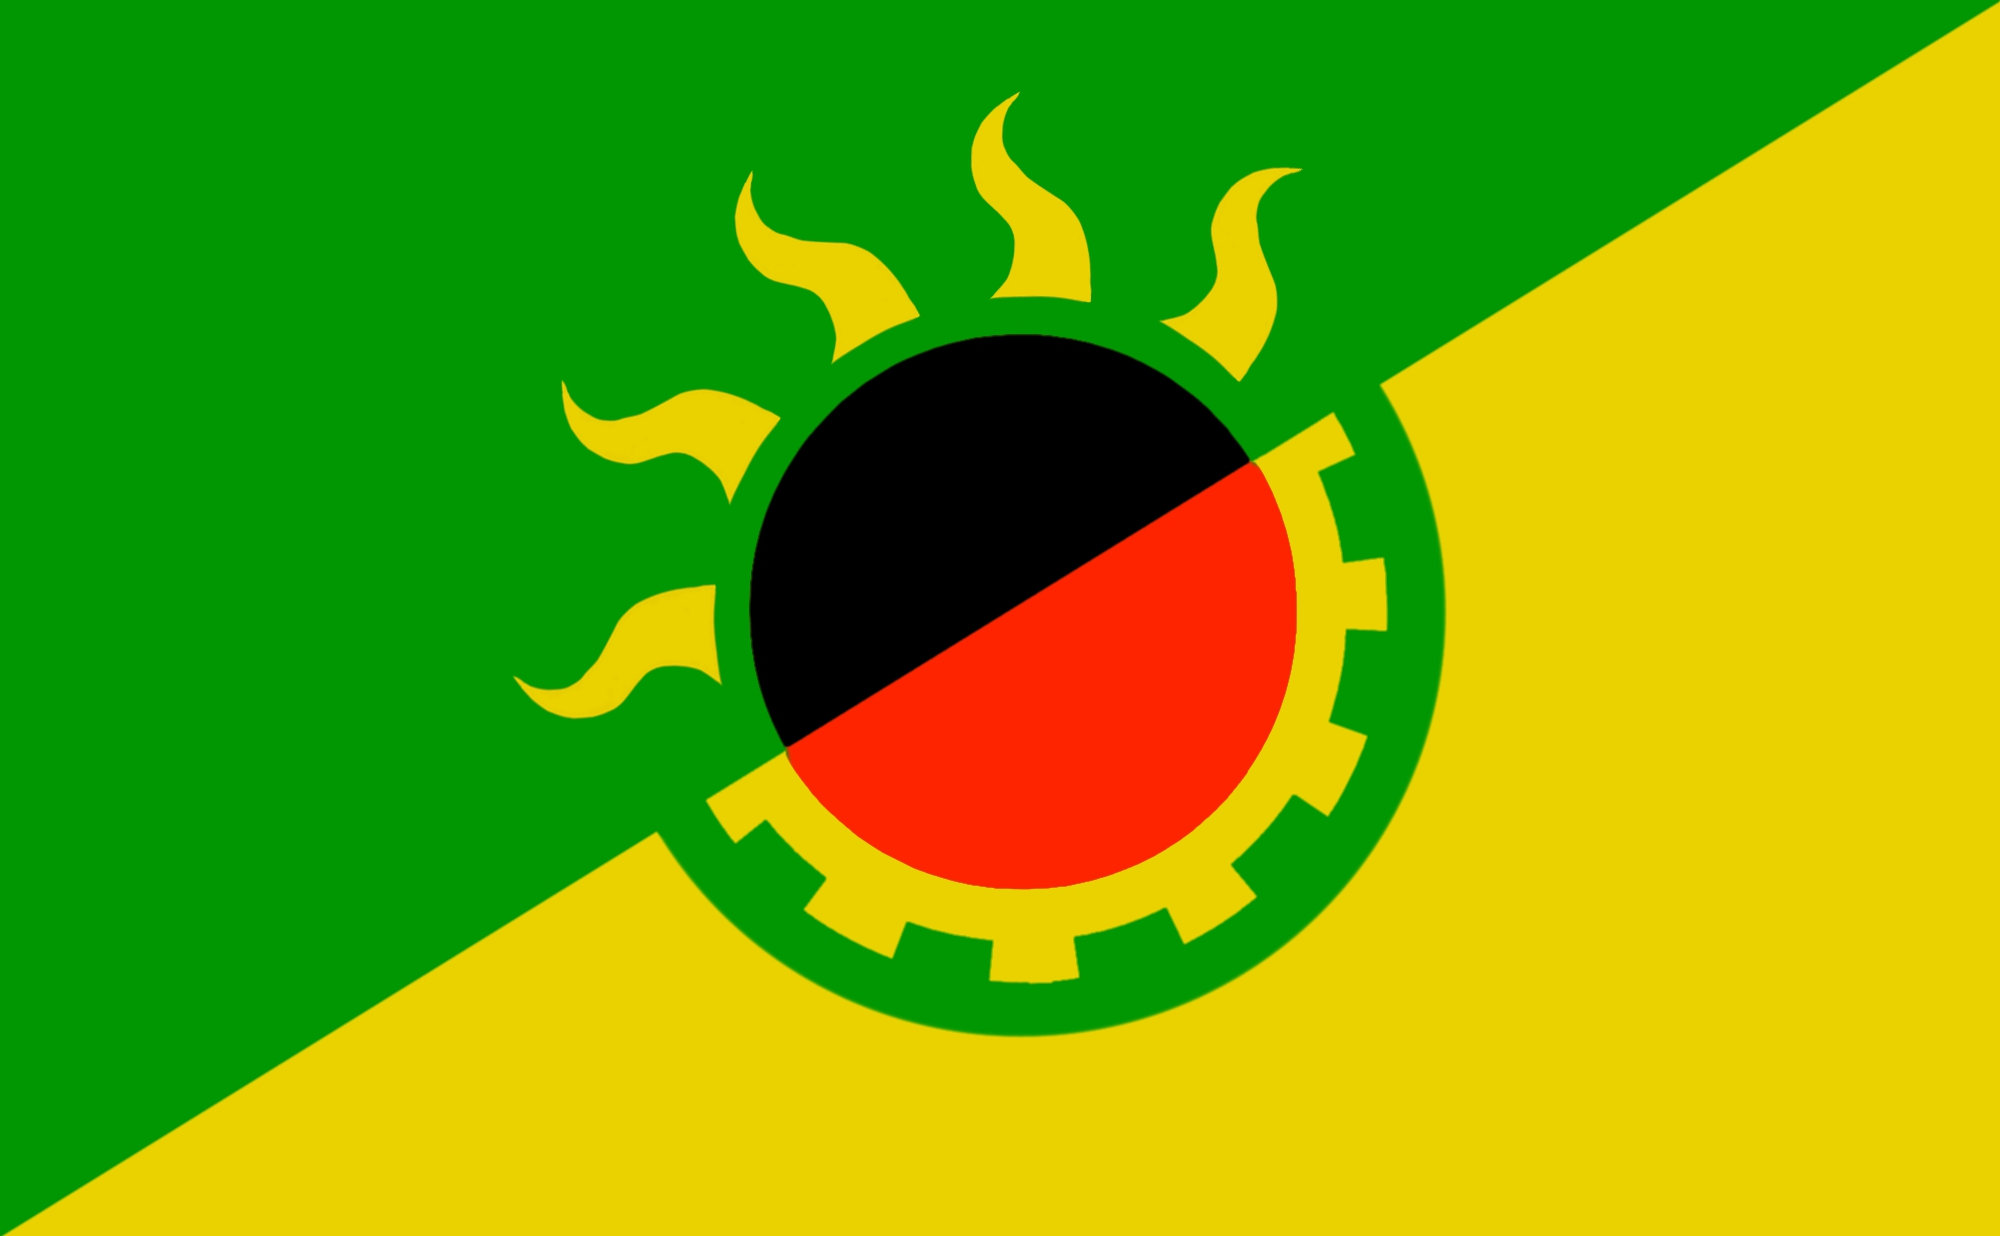 upload.wikimedia.org_wikipedia_commons_d_d2_ancom_or_ansyndie_solarpunk_flag.jpg